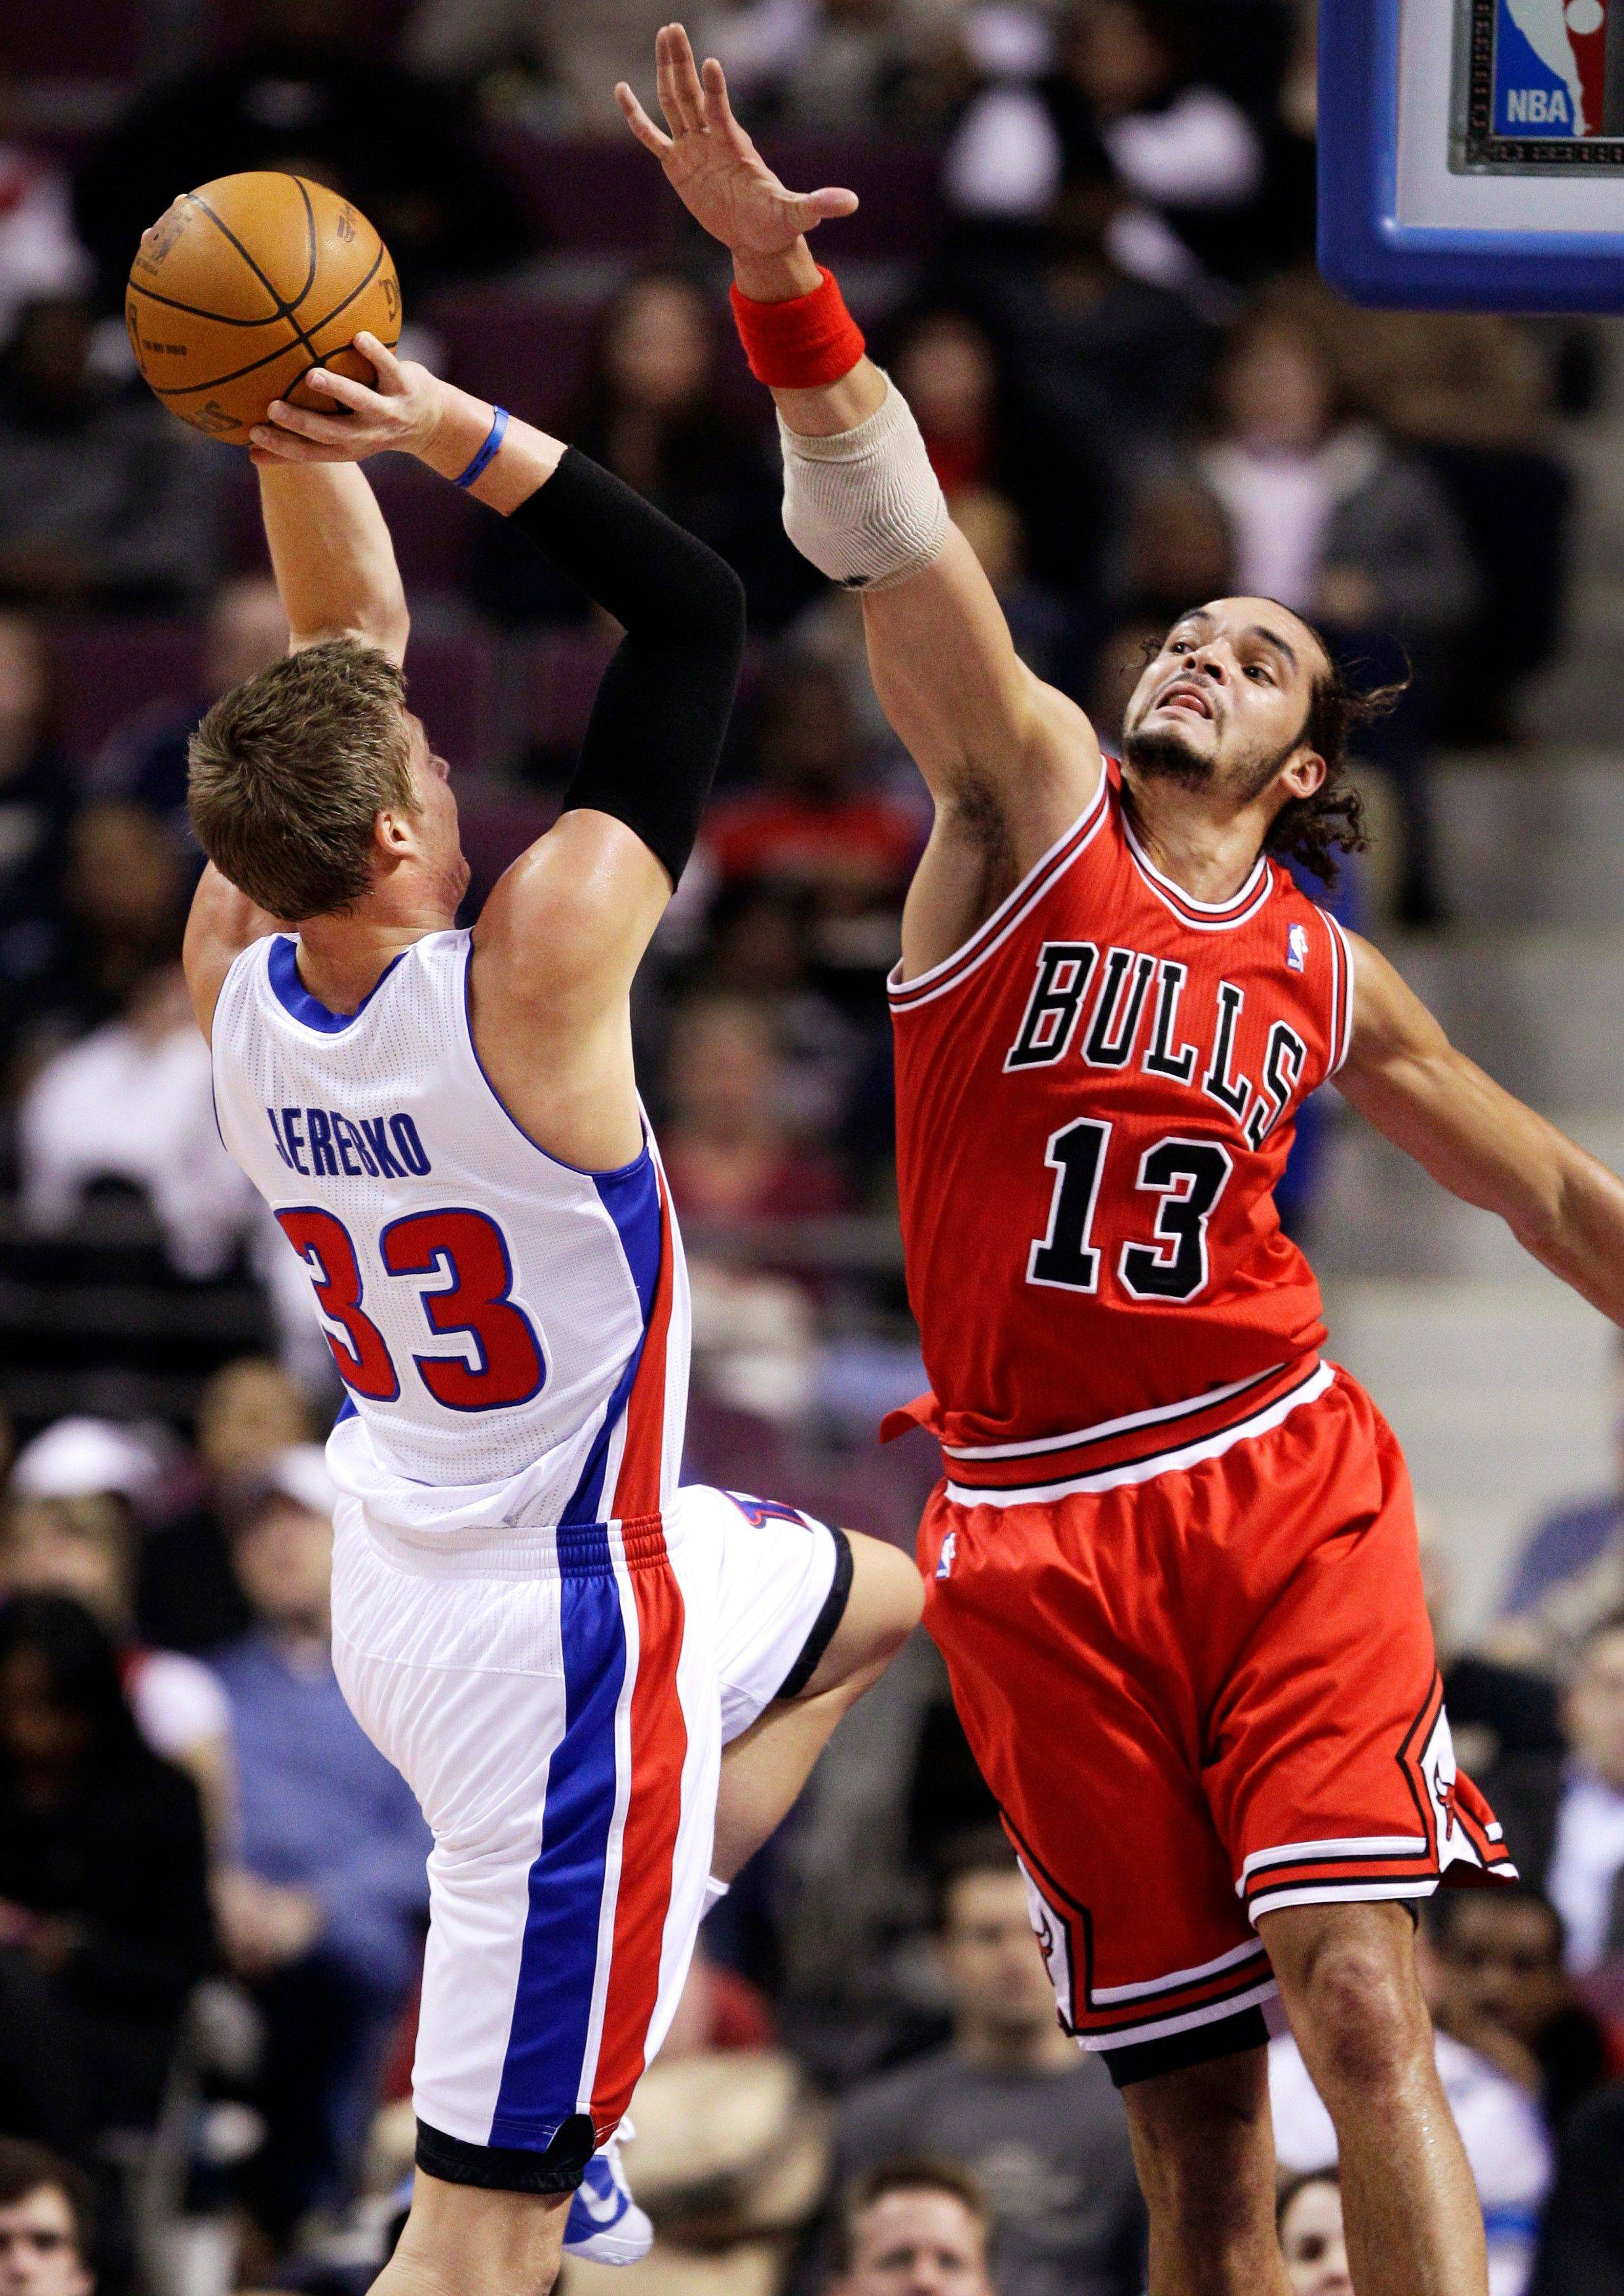 Bulls center Joakim Noah's numbers have been down so far, mostly because he has been in foul trouble.